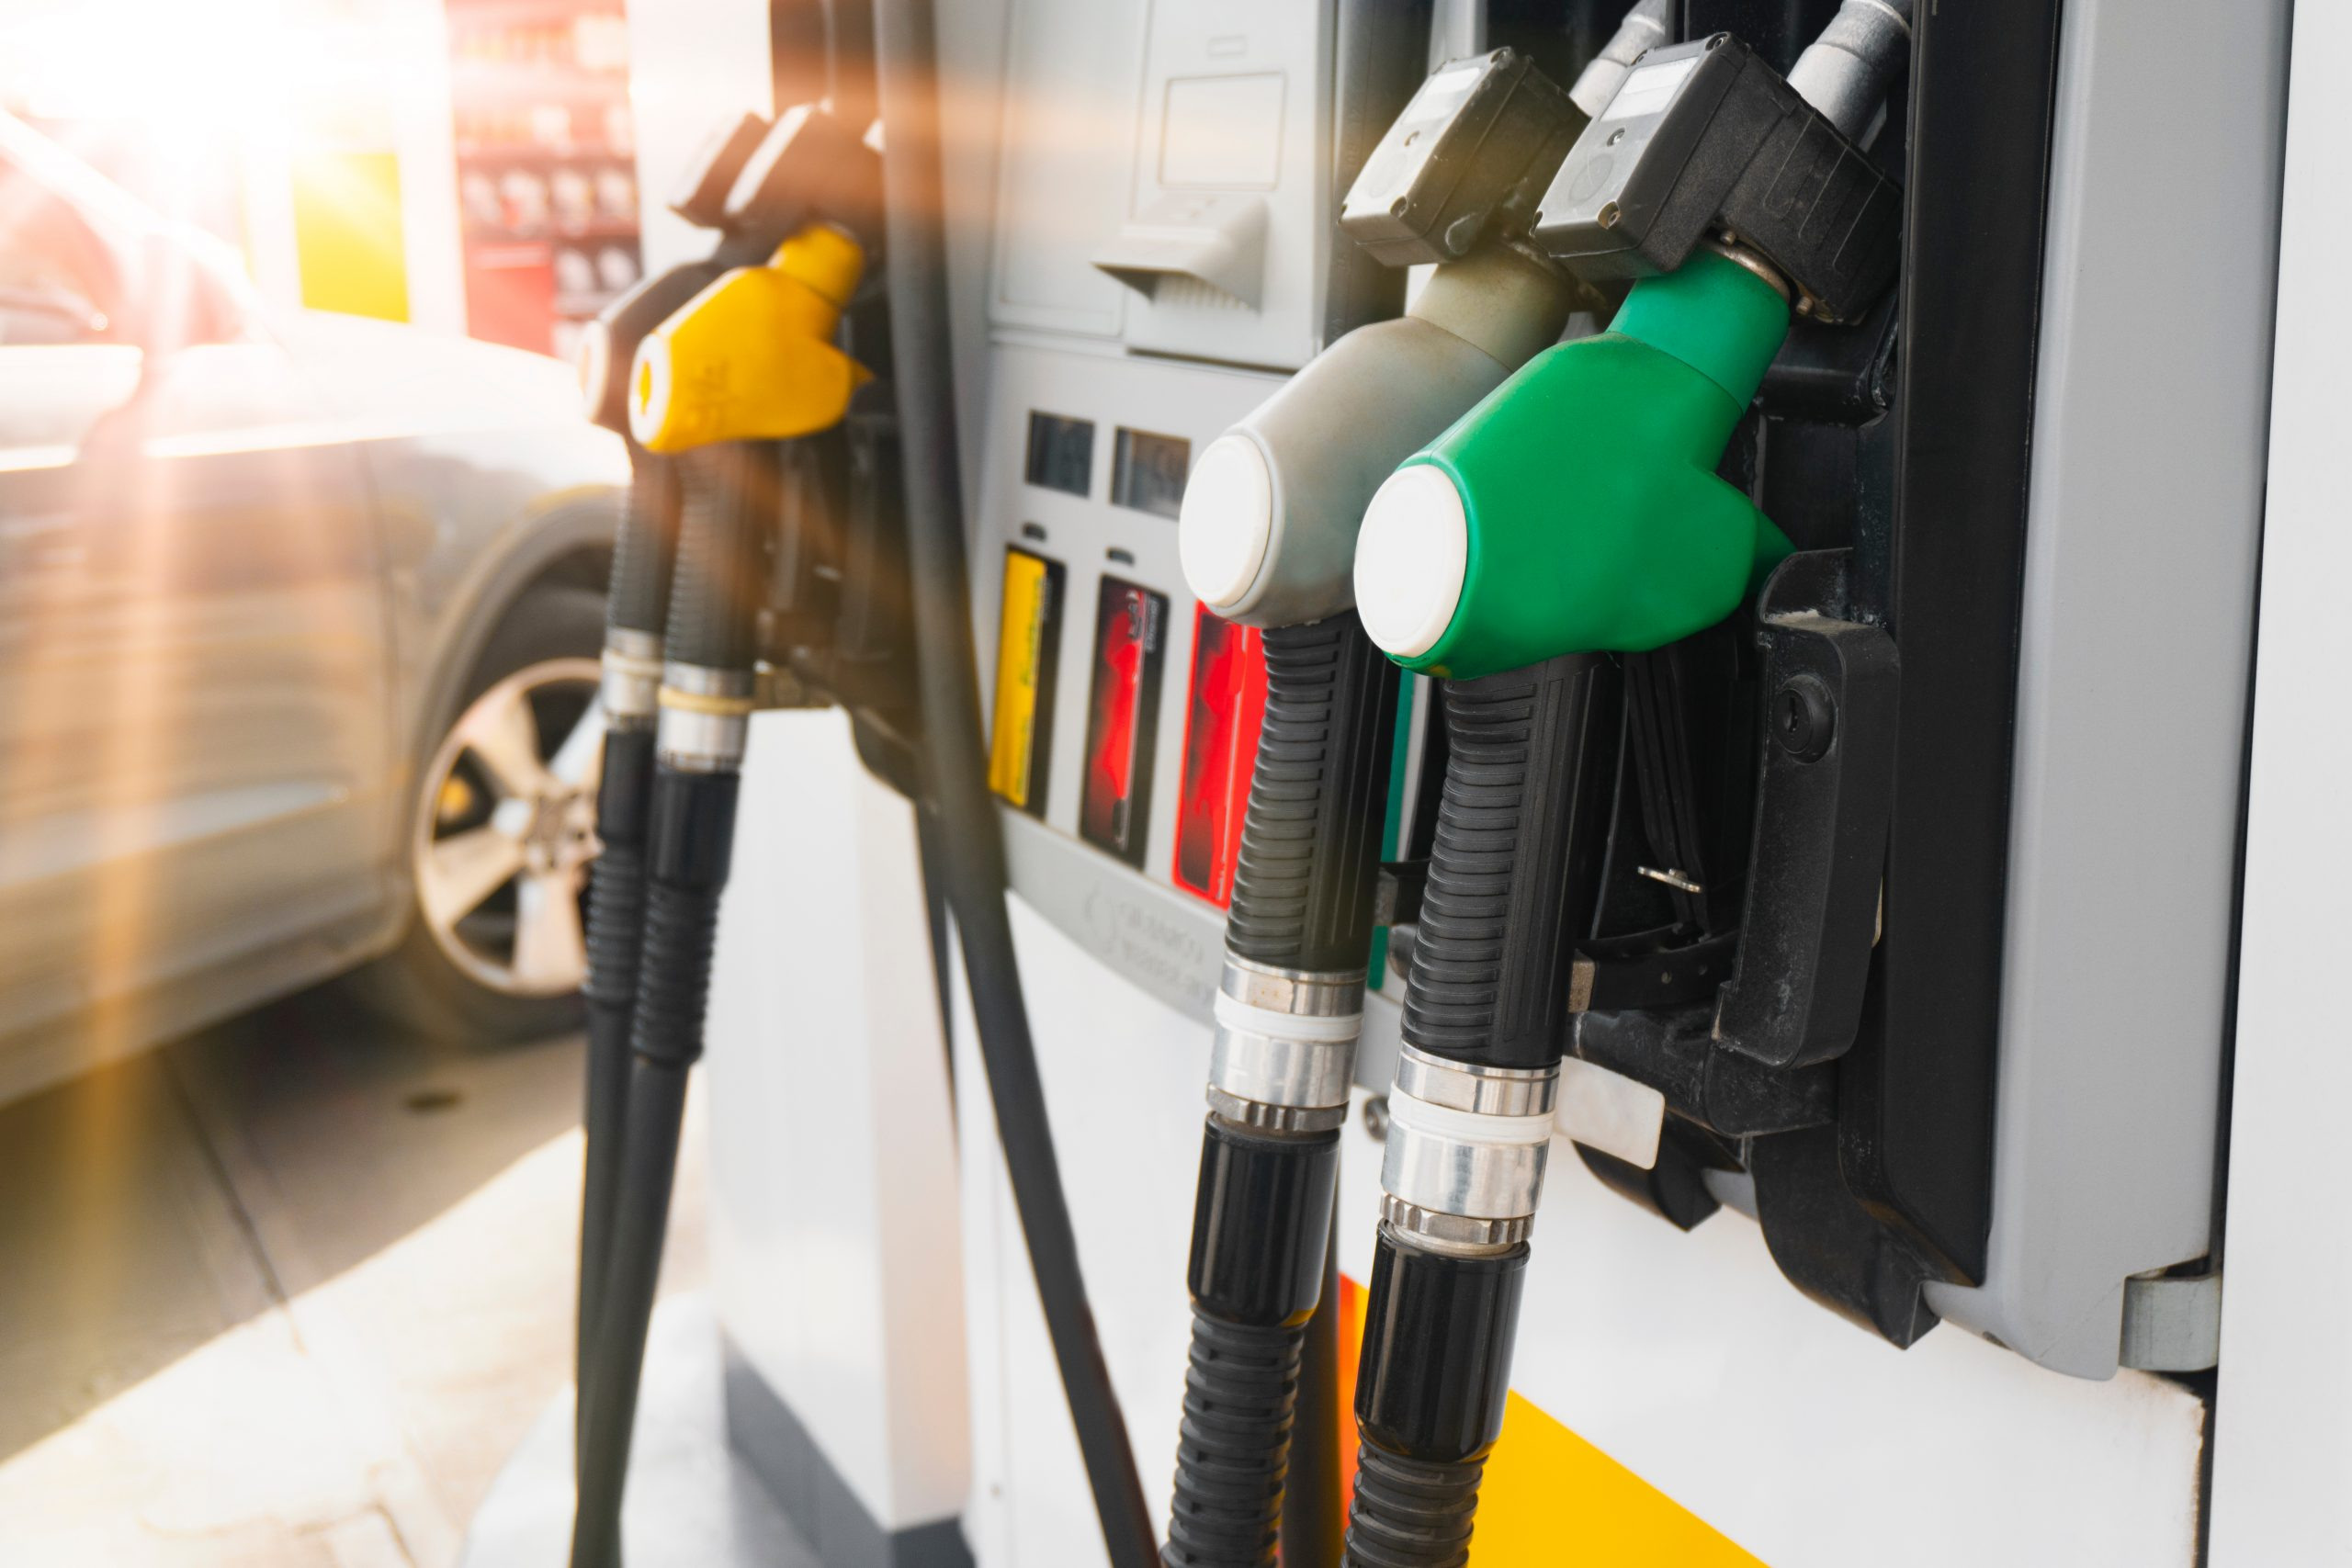 Forecourt Crime Index falls by half in Q2 2020